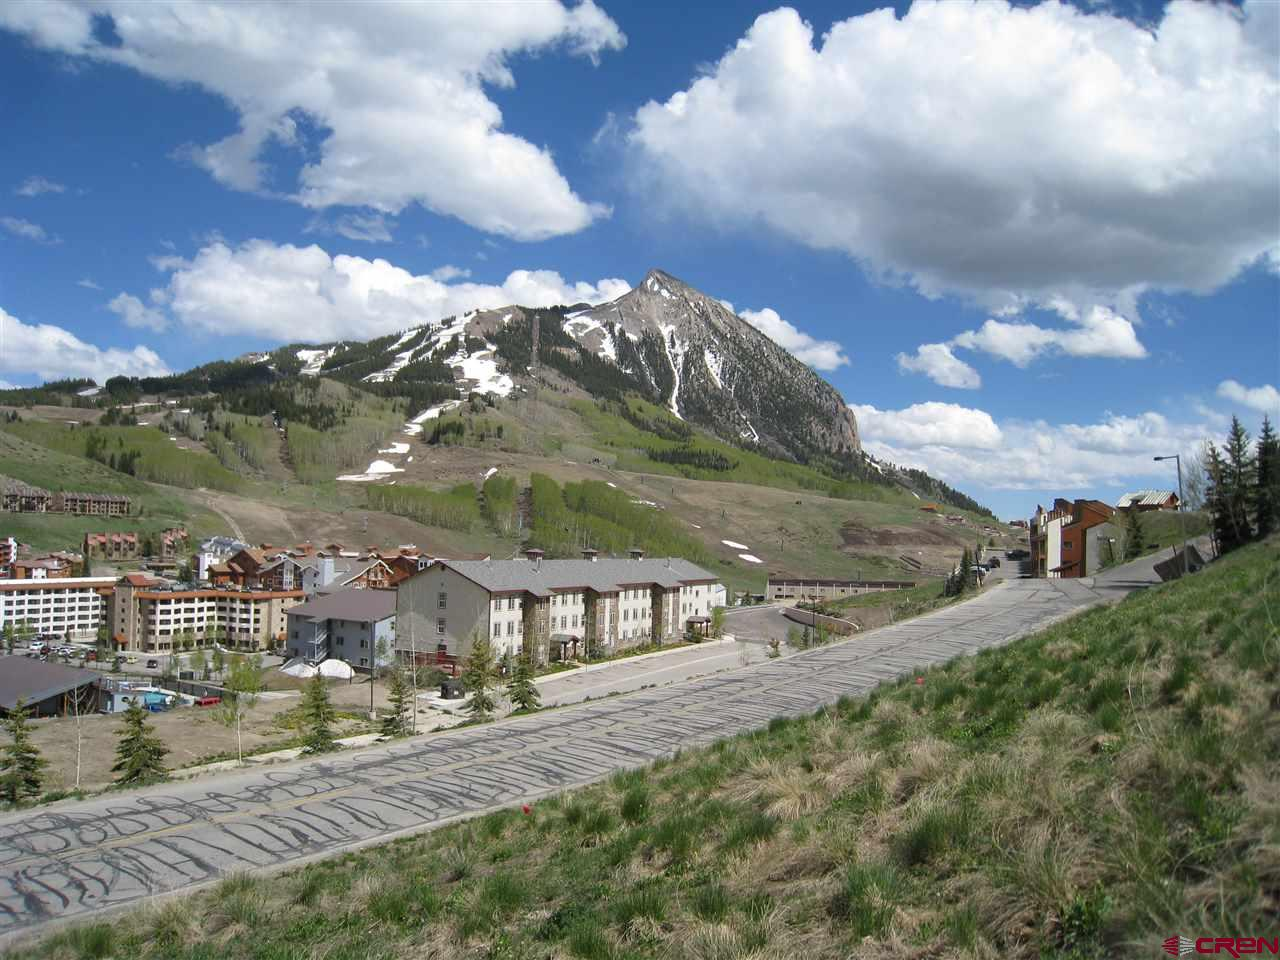 MLS# 757036 - 12 - 17 Marcellina Lane, Mt. Crested Butte, CO 81225